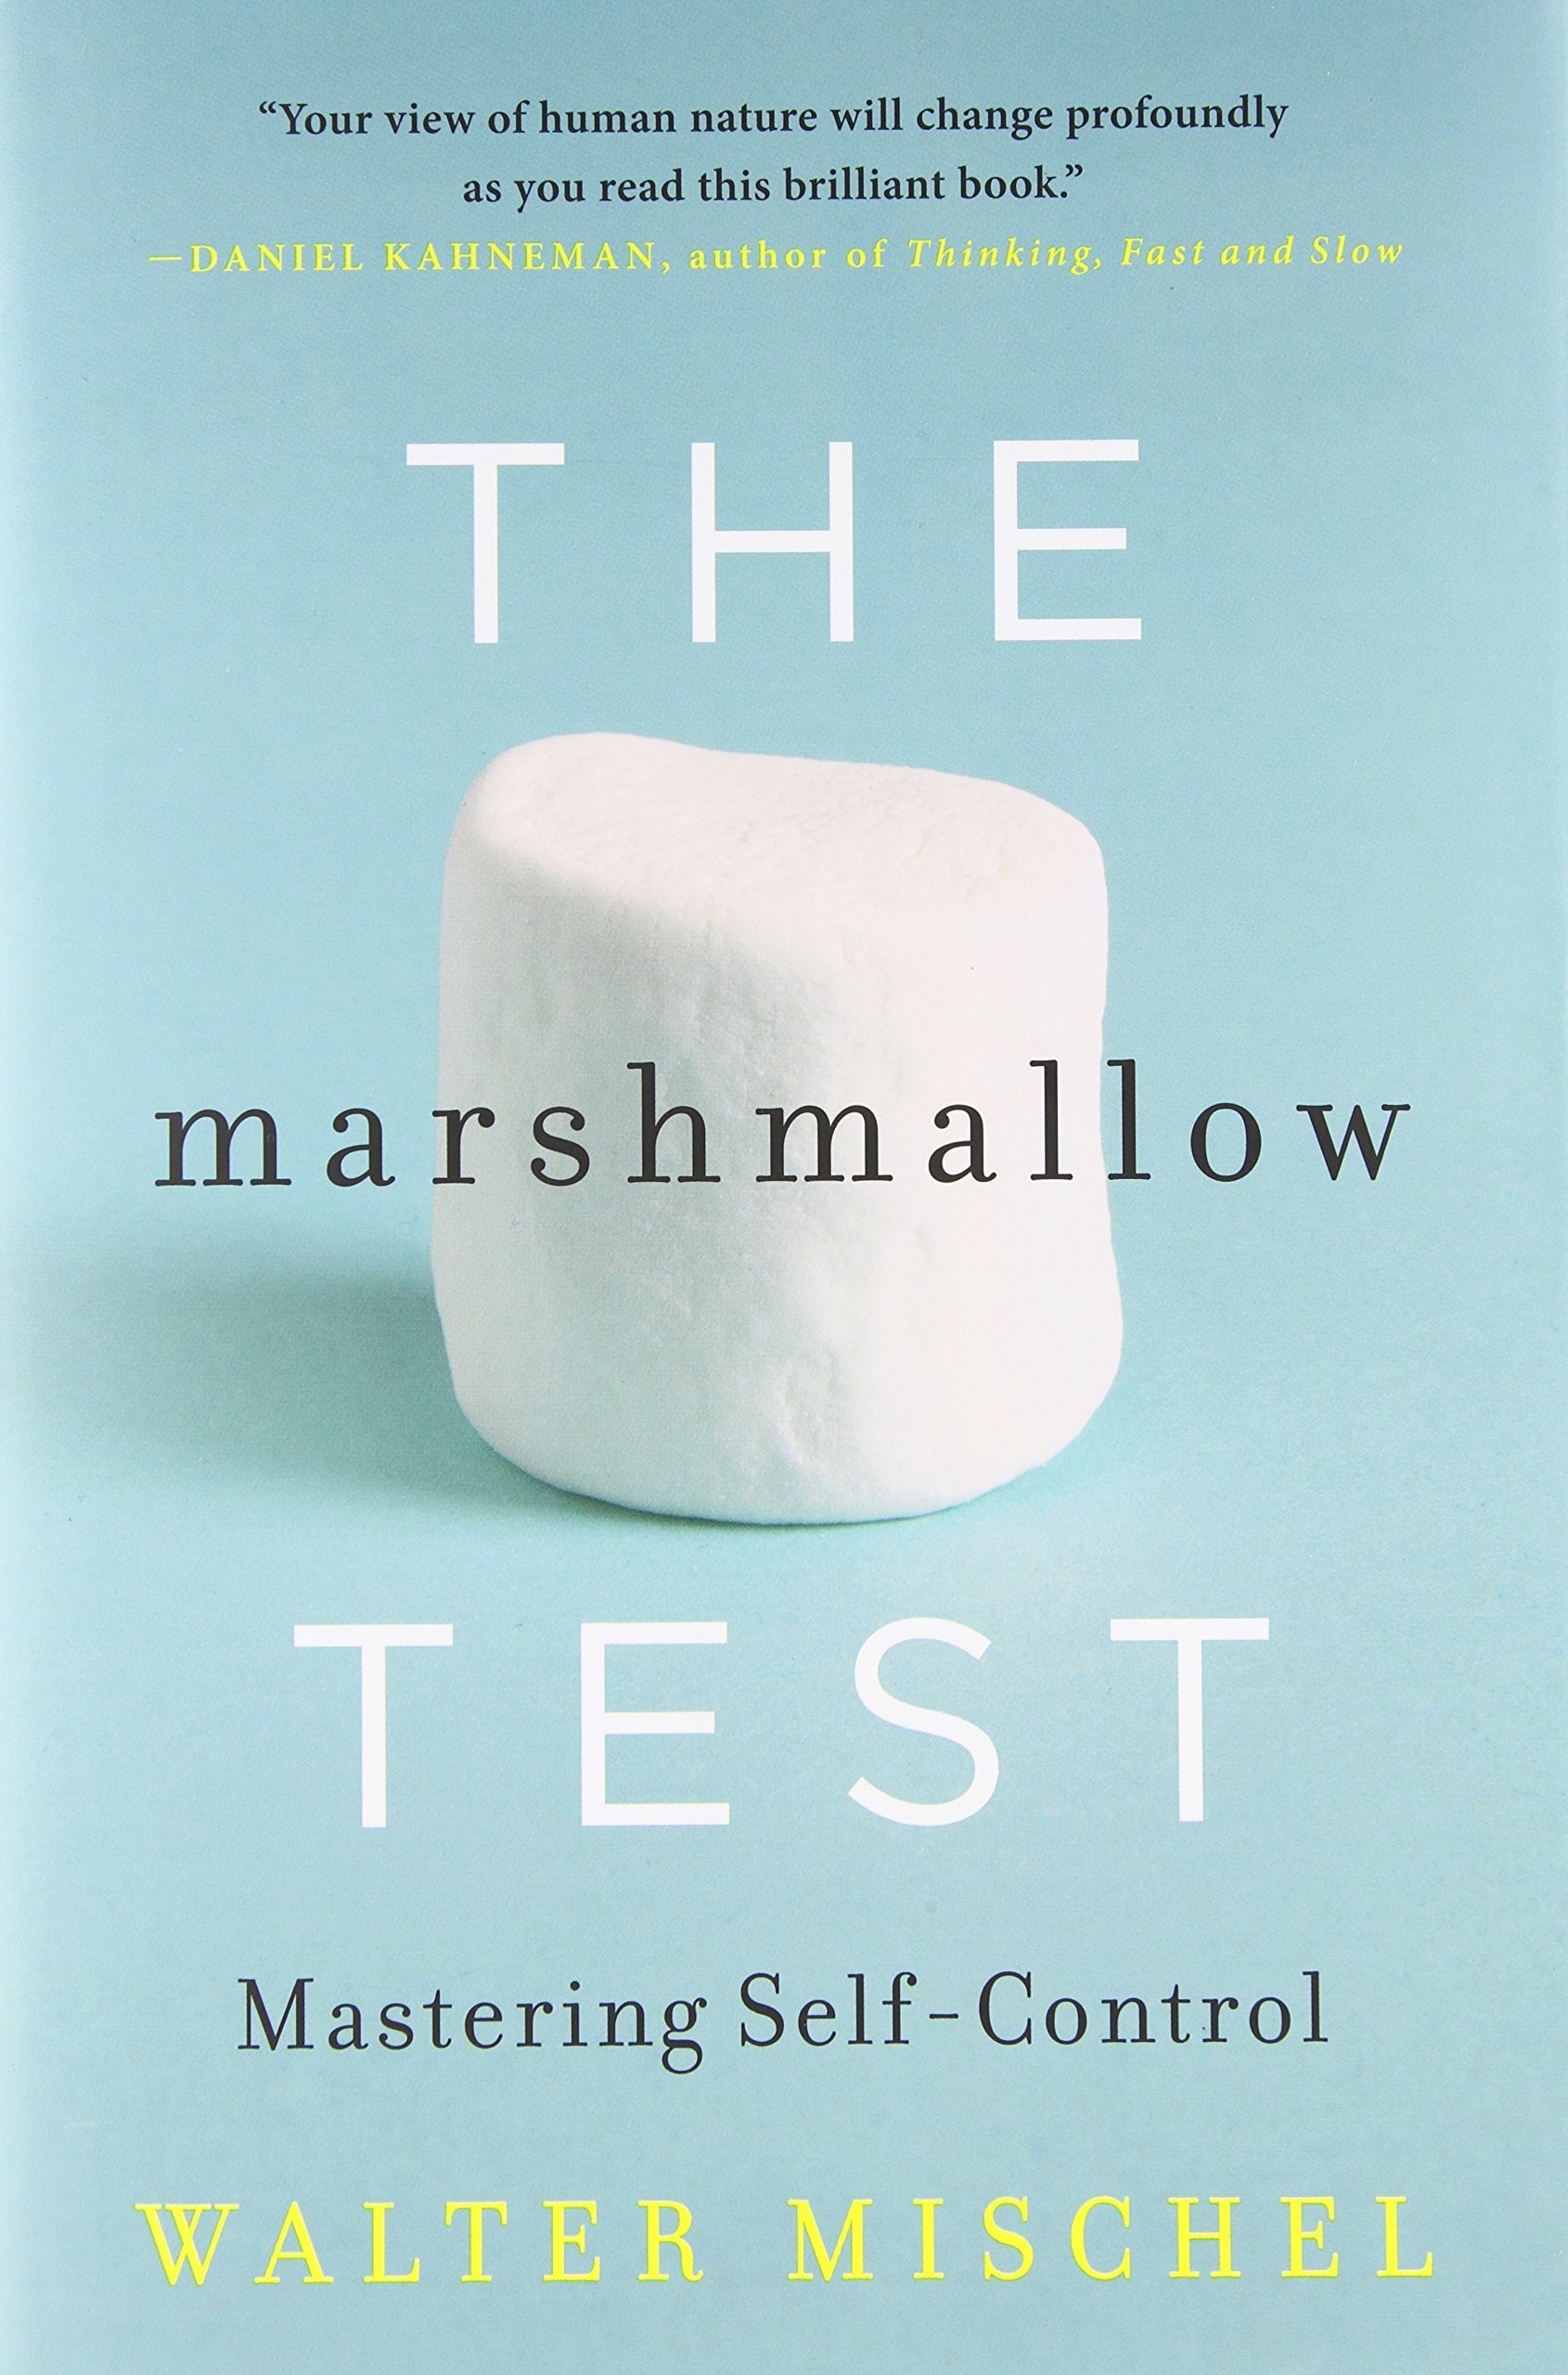 the marshmallow test mastering self control walter mischel  the marshmallow test mastering self control walter mischel 8601411340017 books ca